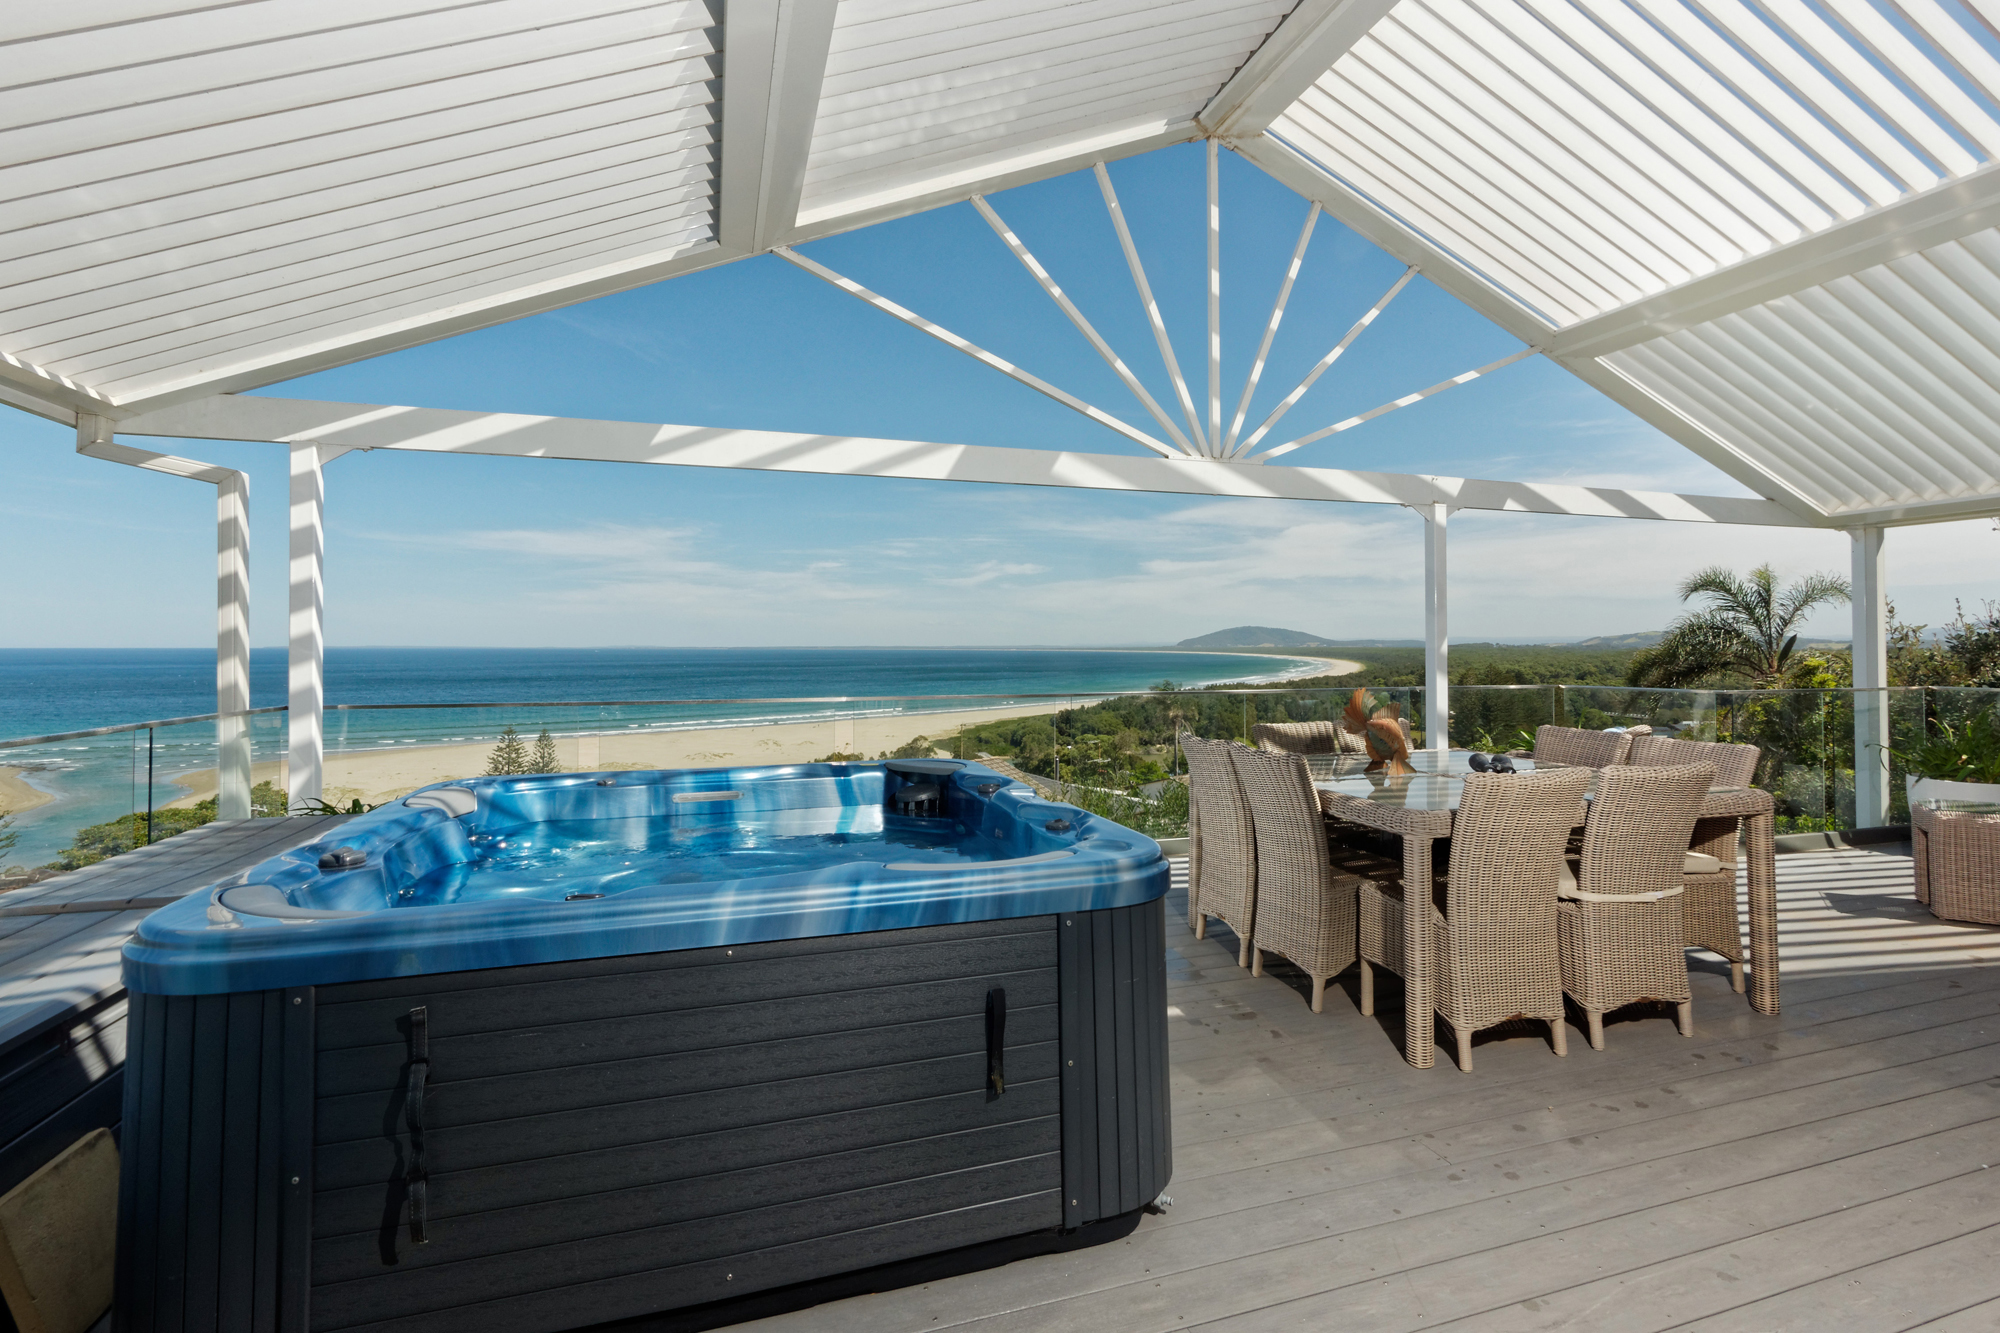 A bright blue hot tub and some table and chairs sit on an expansive balcony overlooking Seven Mile Beach.